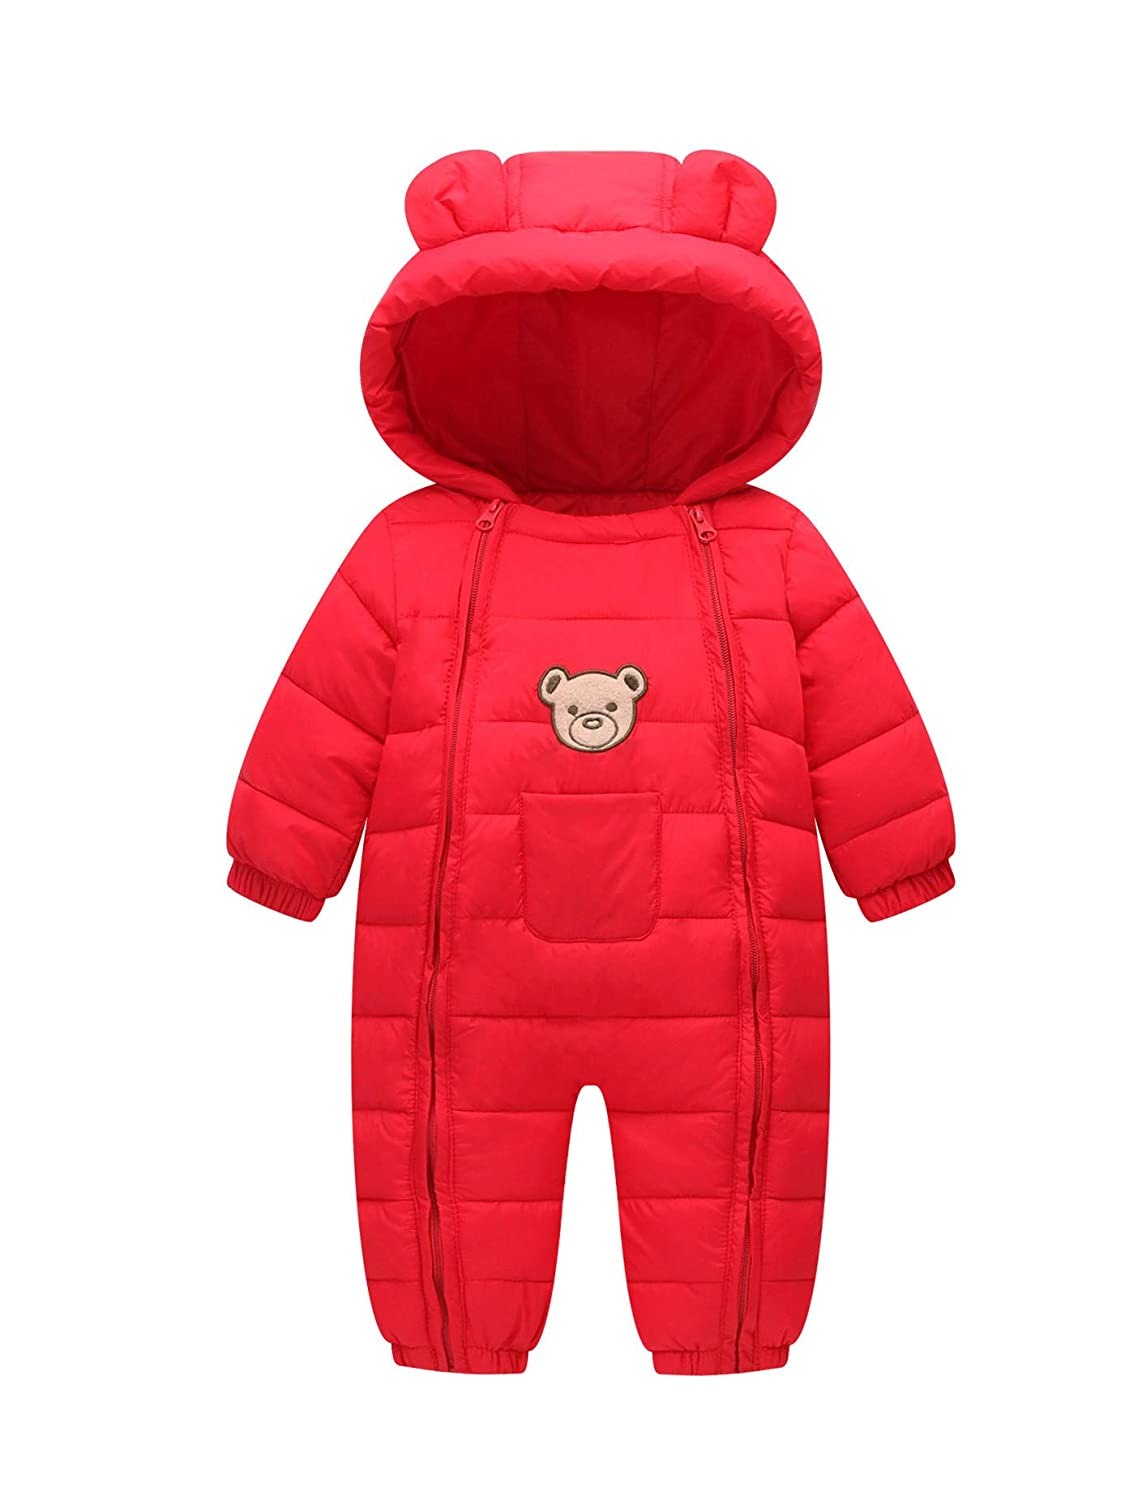 Baby Cotton Snowsuit Toddler Double Zipper Hooded Puffer Winter Thermal Romper XX01-12